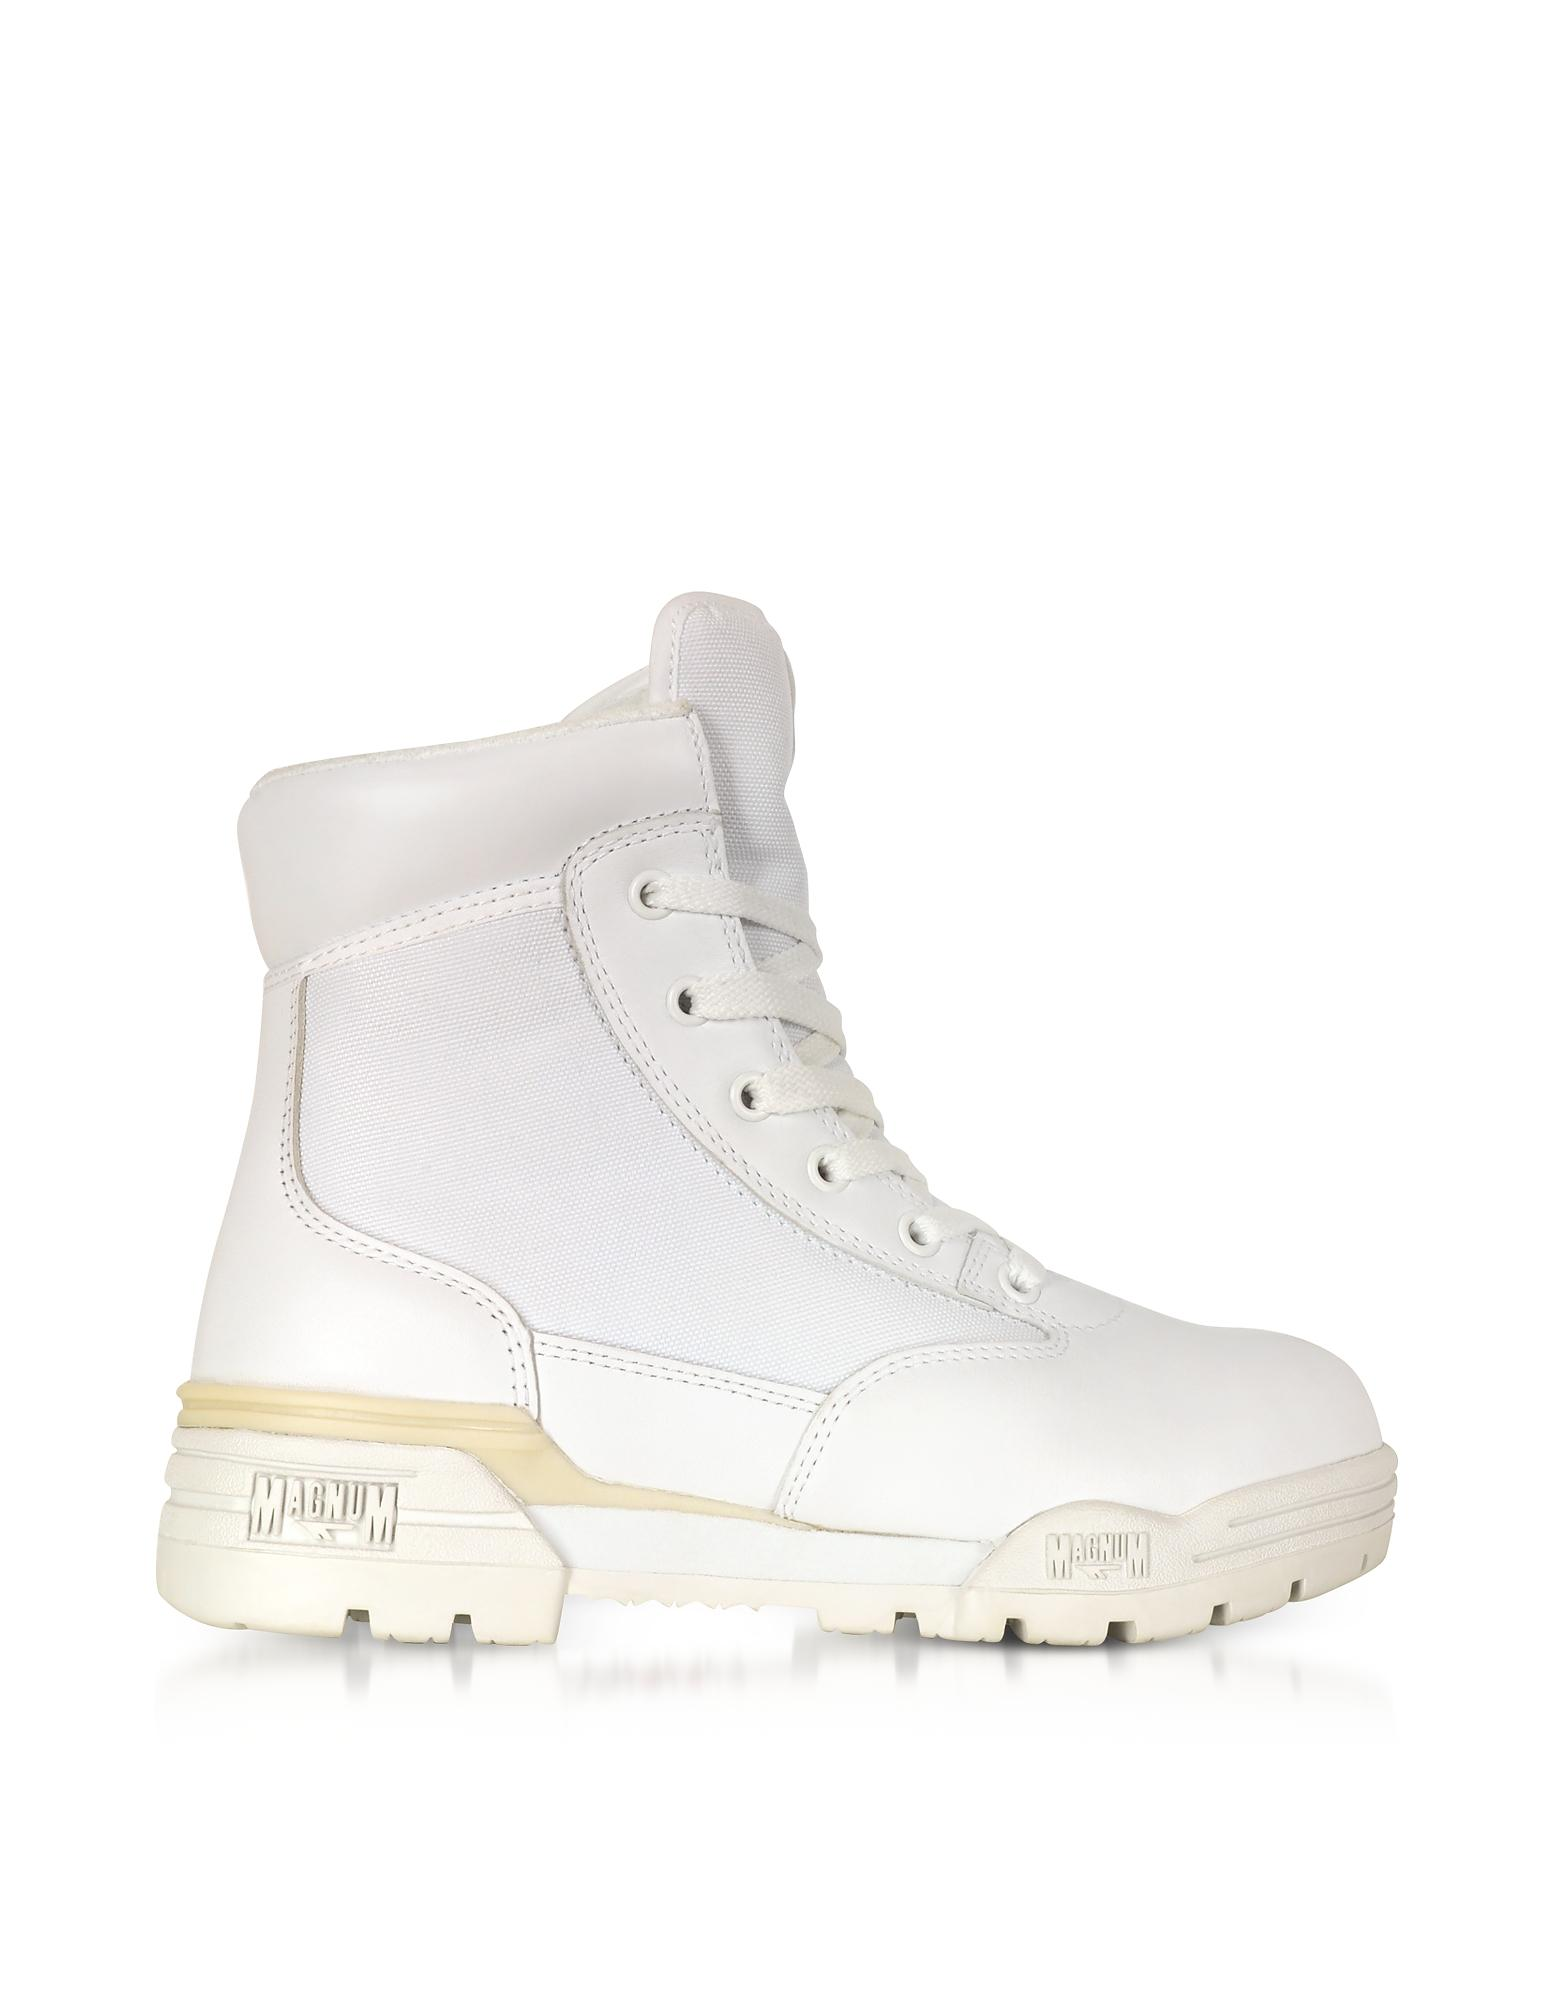 0ef67368ae9 Hi-tec Magnum 6 Classic Lux White Mesh And Leather Women's Boots